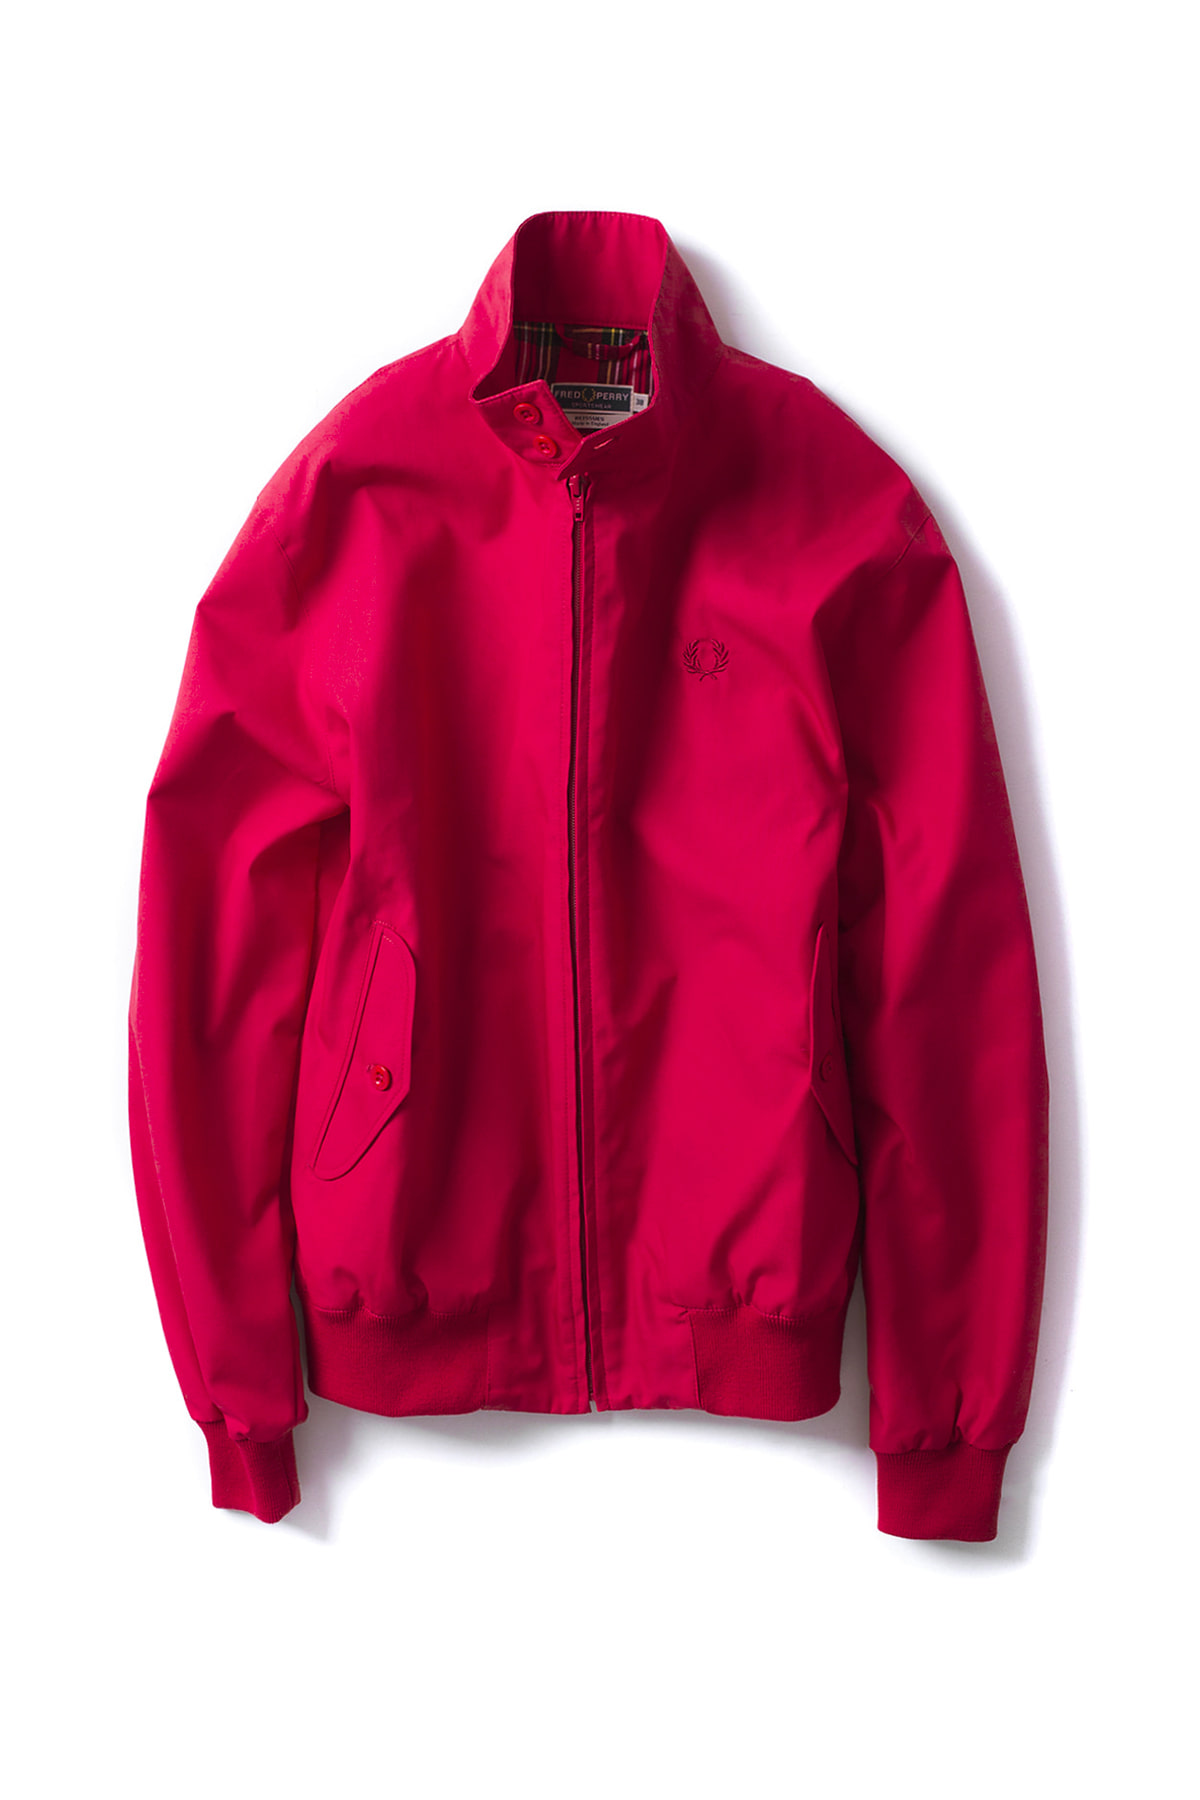 FRED PERRY : Made In England Harrington (Red)